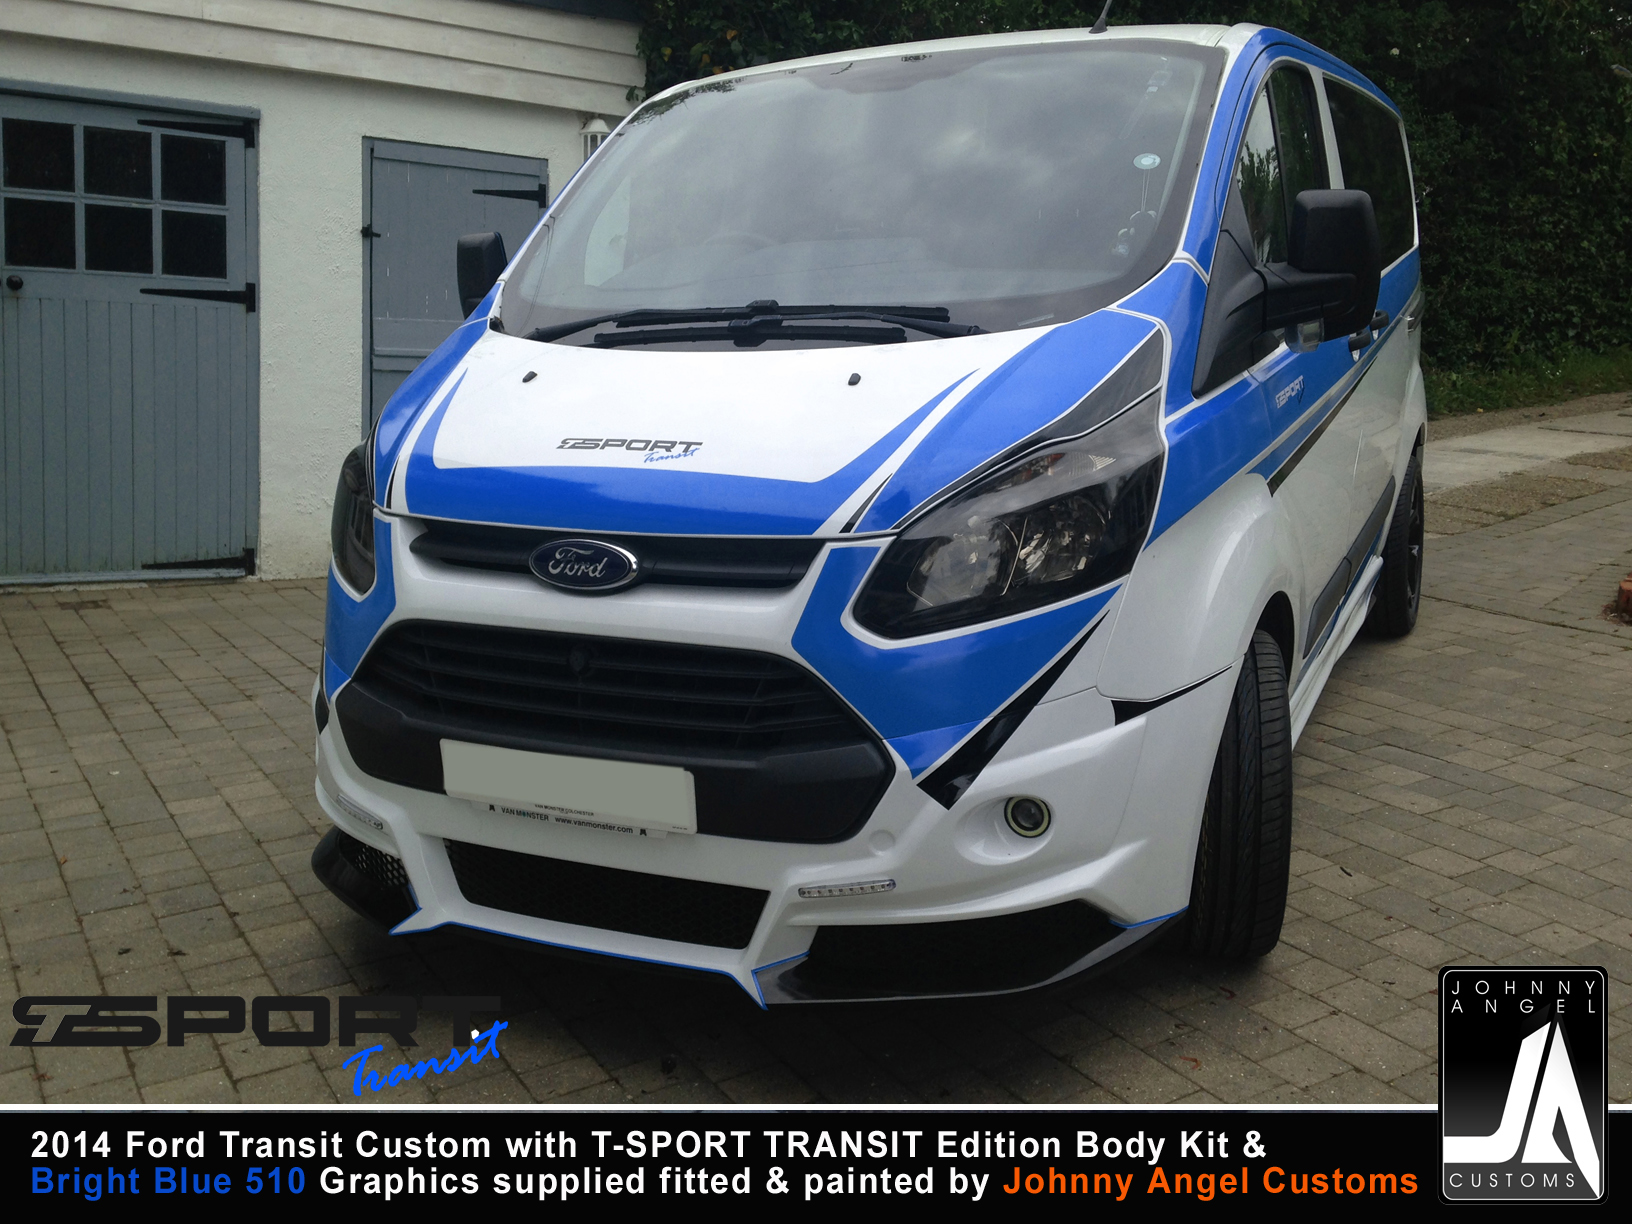 2014 Ford Transit Custom with T-SPORT TRANSIT Edition Body Kit & Graphics Dark blue By Johnny Angel